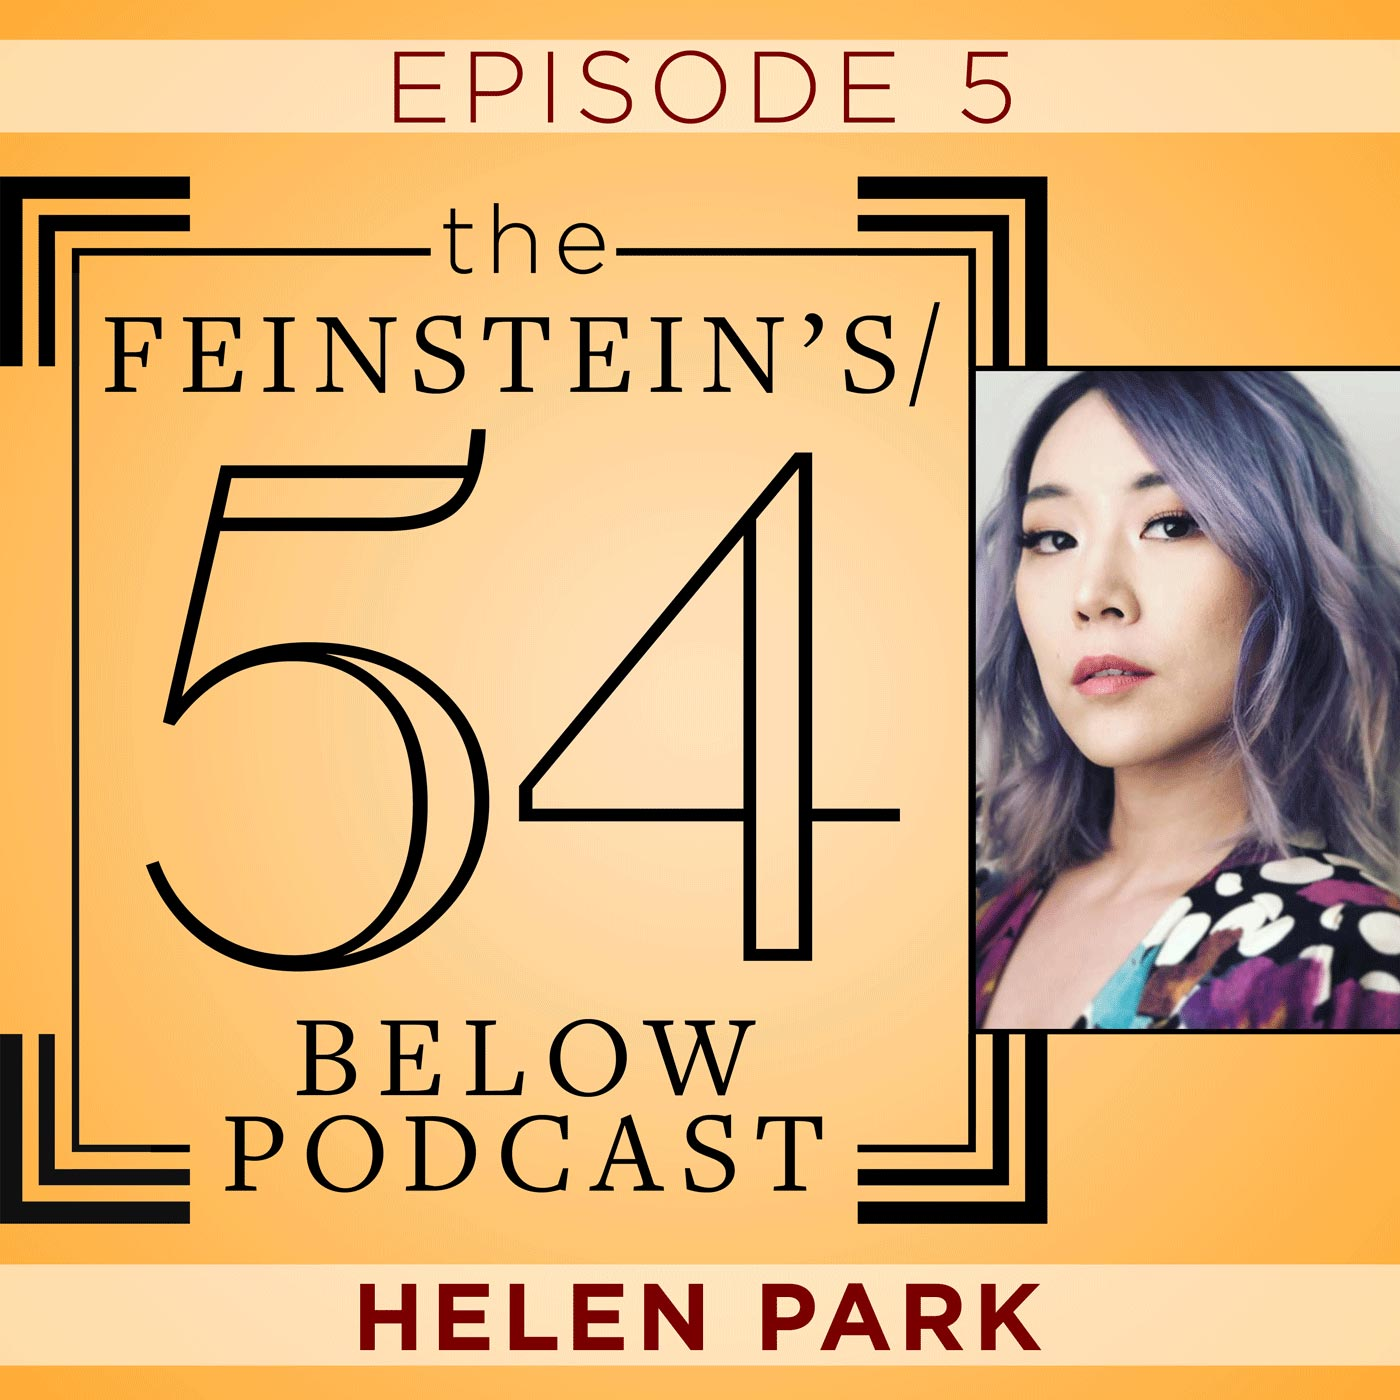 The Feinstein's 54 Below Episode 5 Helen Park